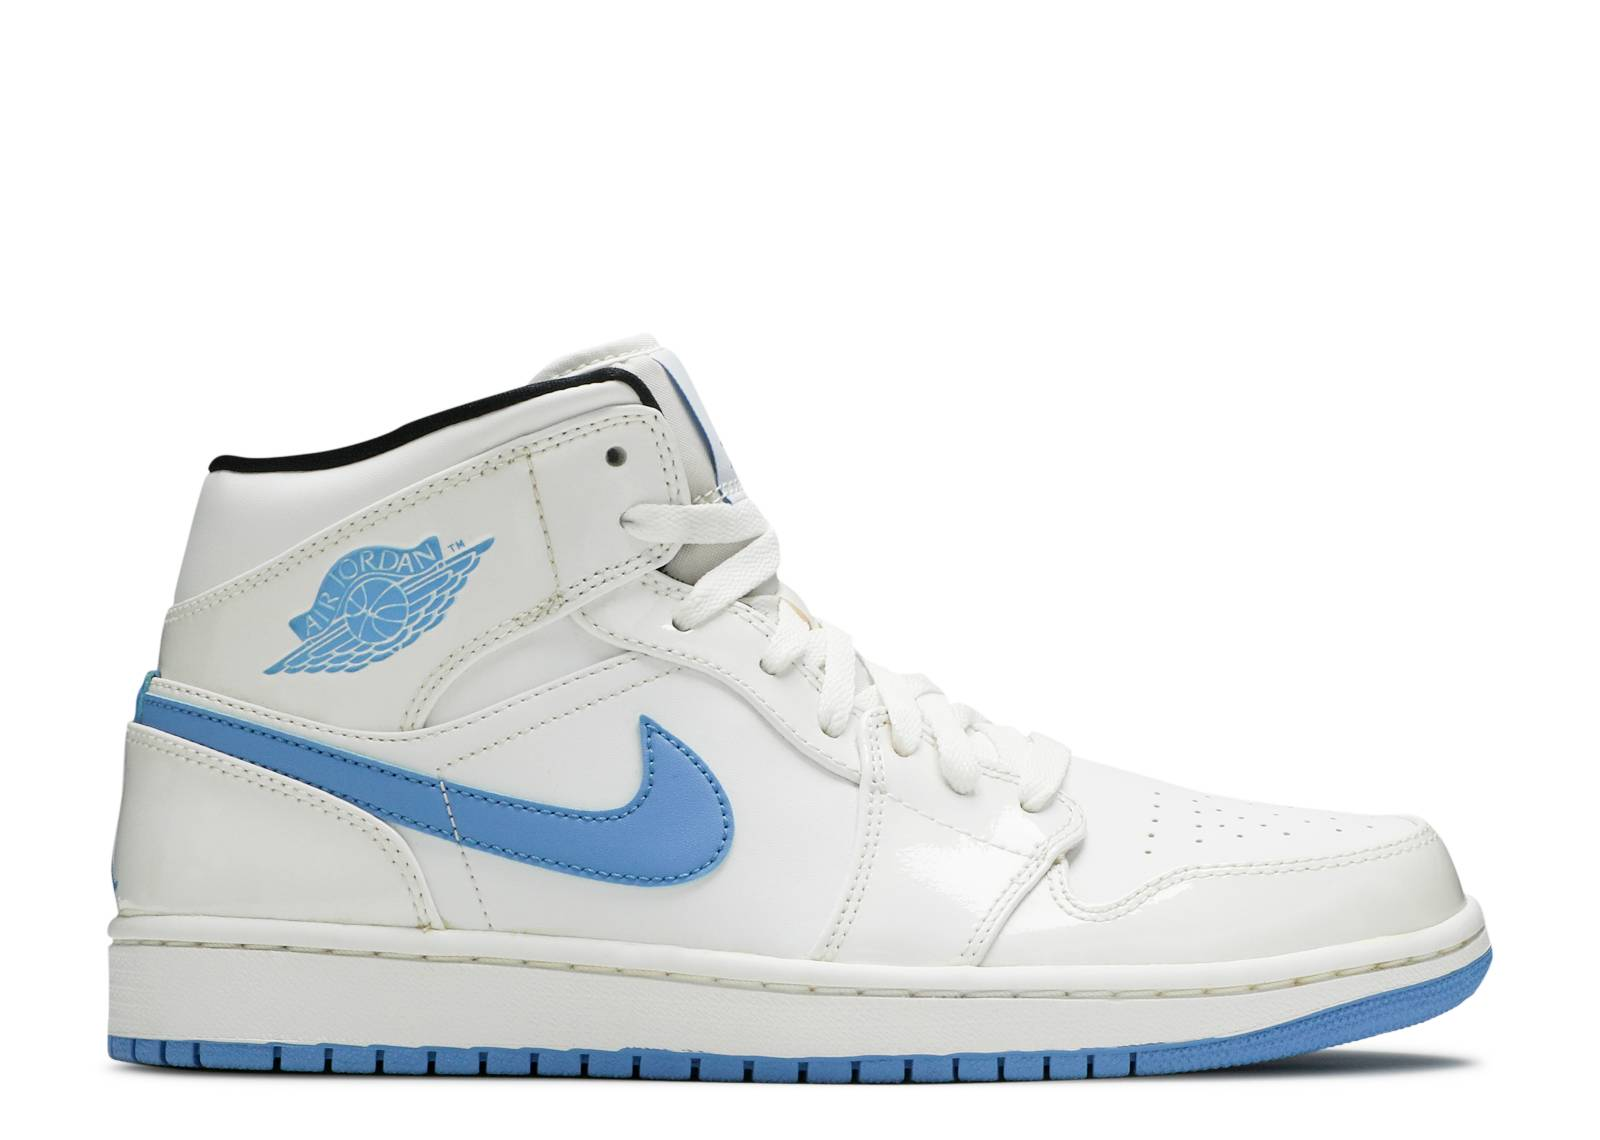 aec8027e4fd Air Jordan 1 Retro Mid - Air Jordan - 554724 127 - white legend blue ...